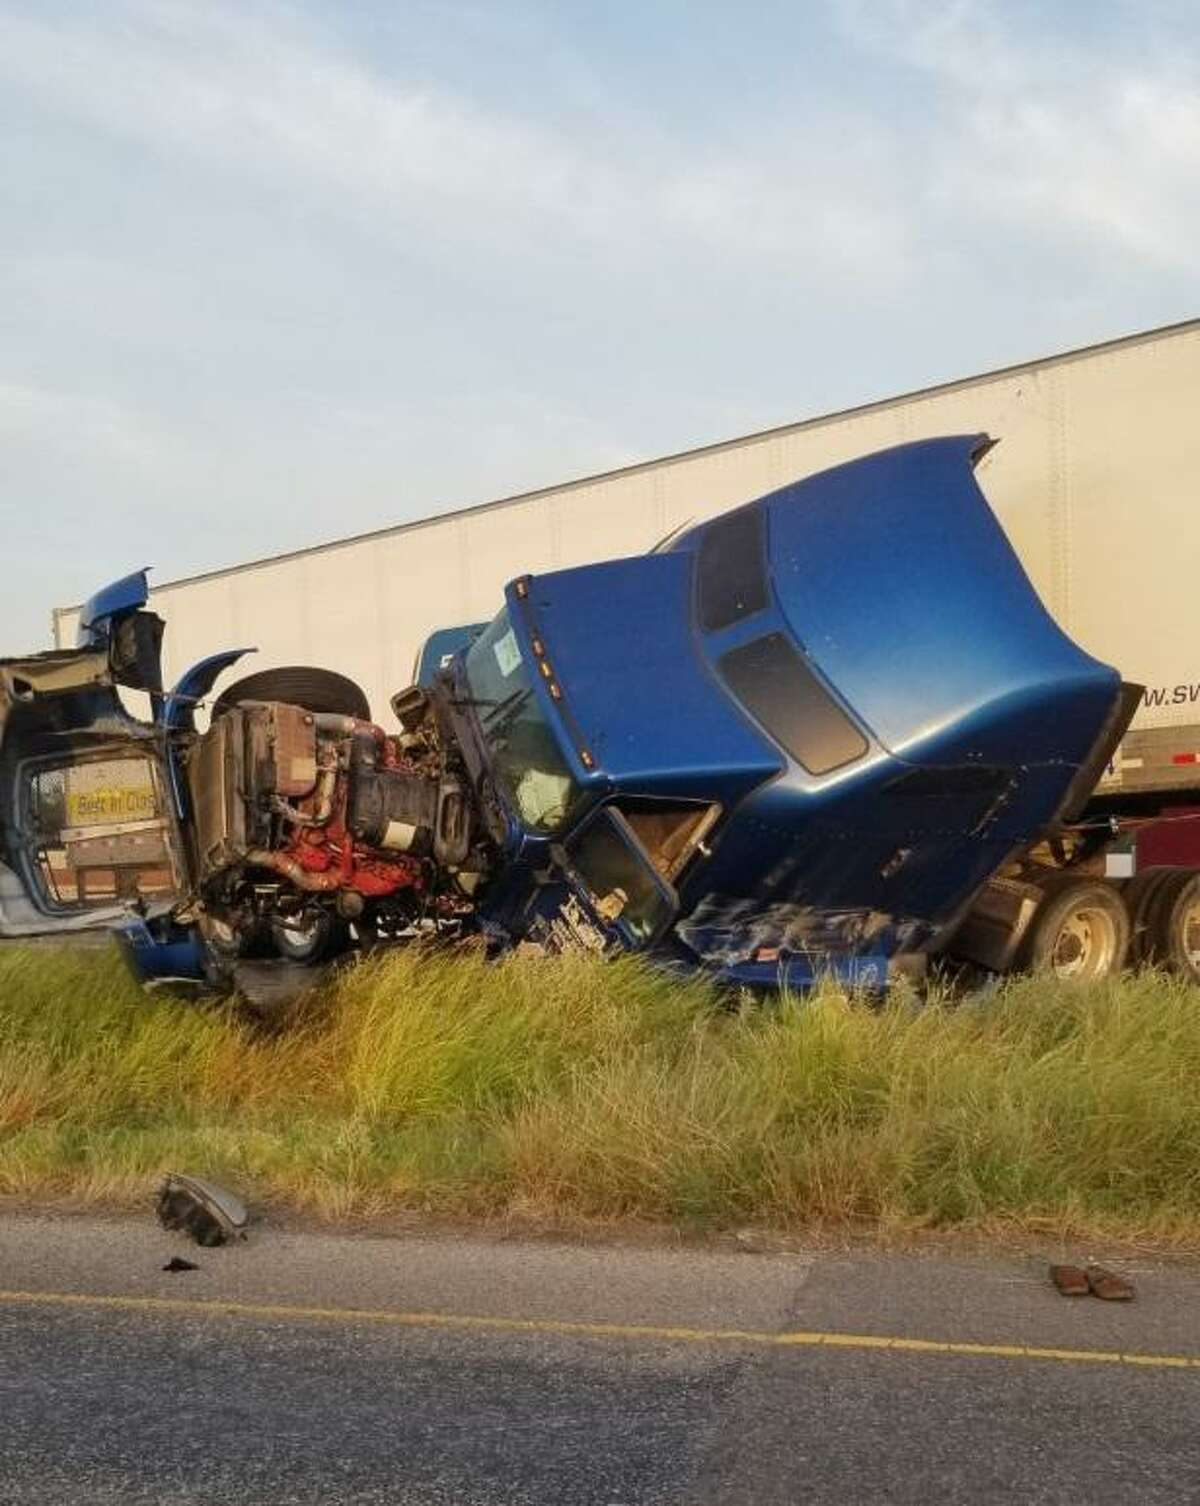 Two people were reported in serious condition following this crash on Monday morning along Interstate 35.